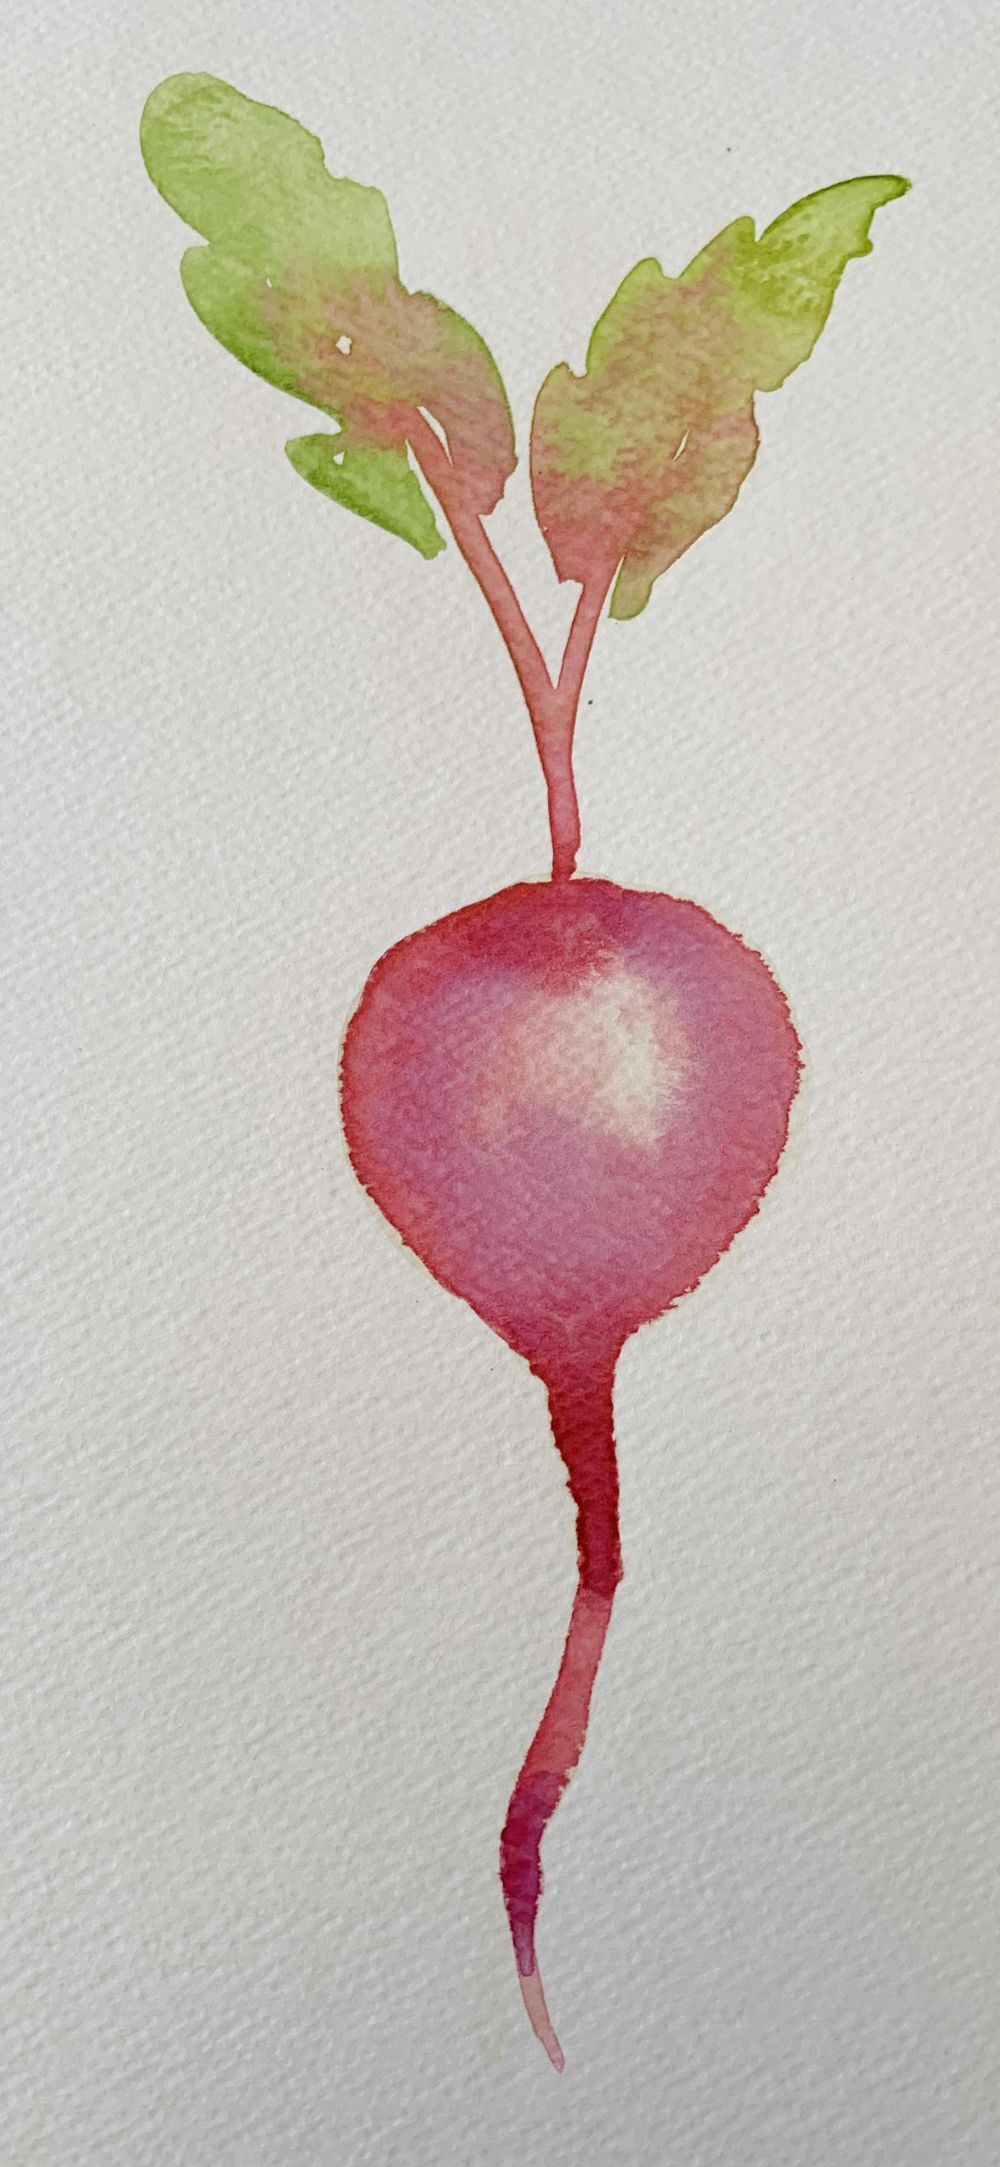 Robyn's veggies - image 3 - student project